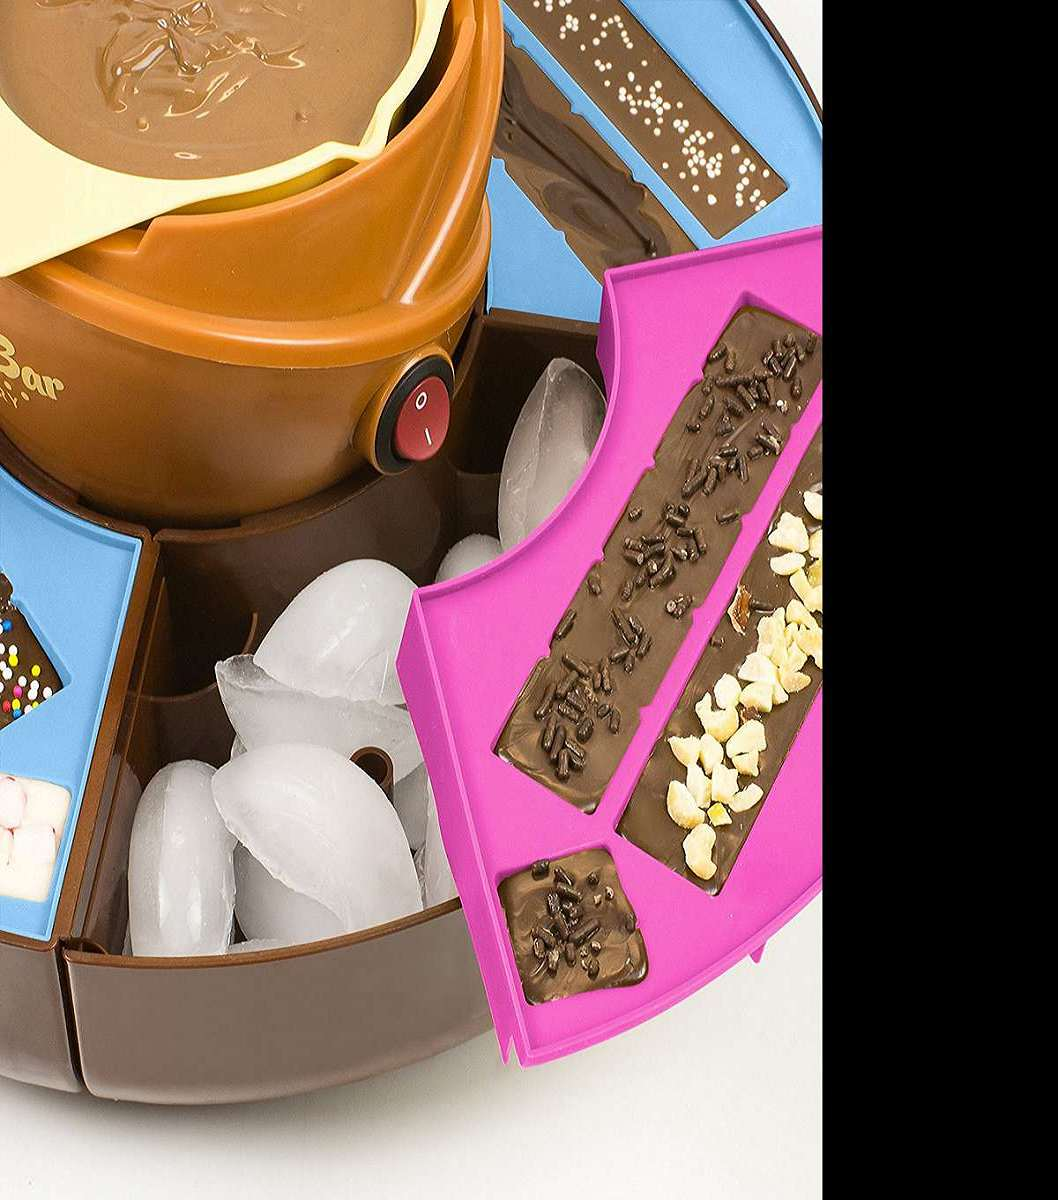 Chocolate Candy Bar Maker | DudeIWantThat.com